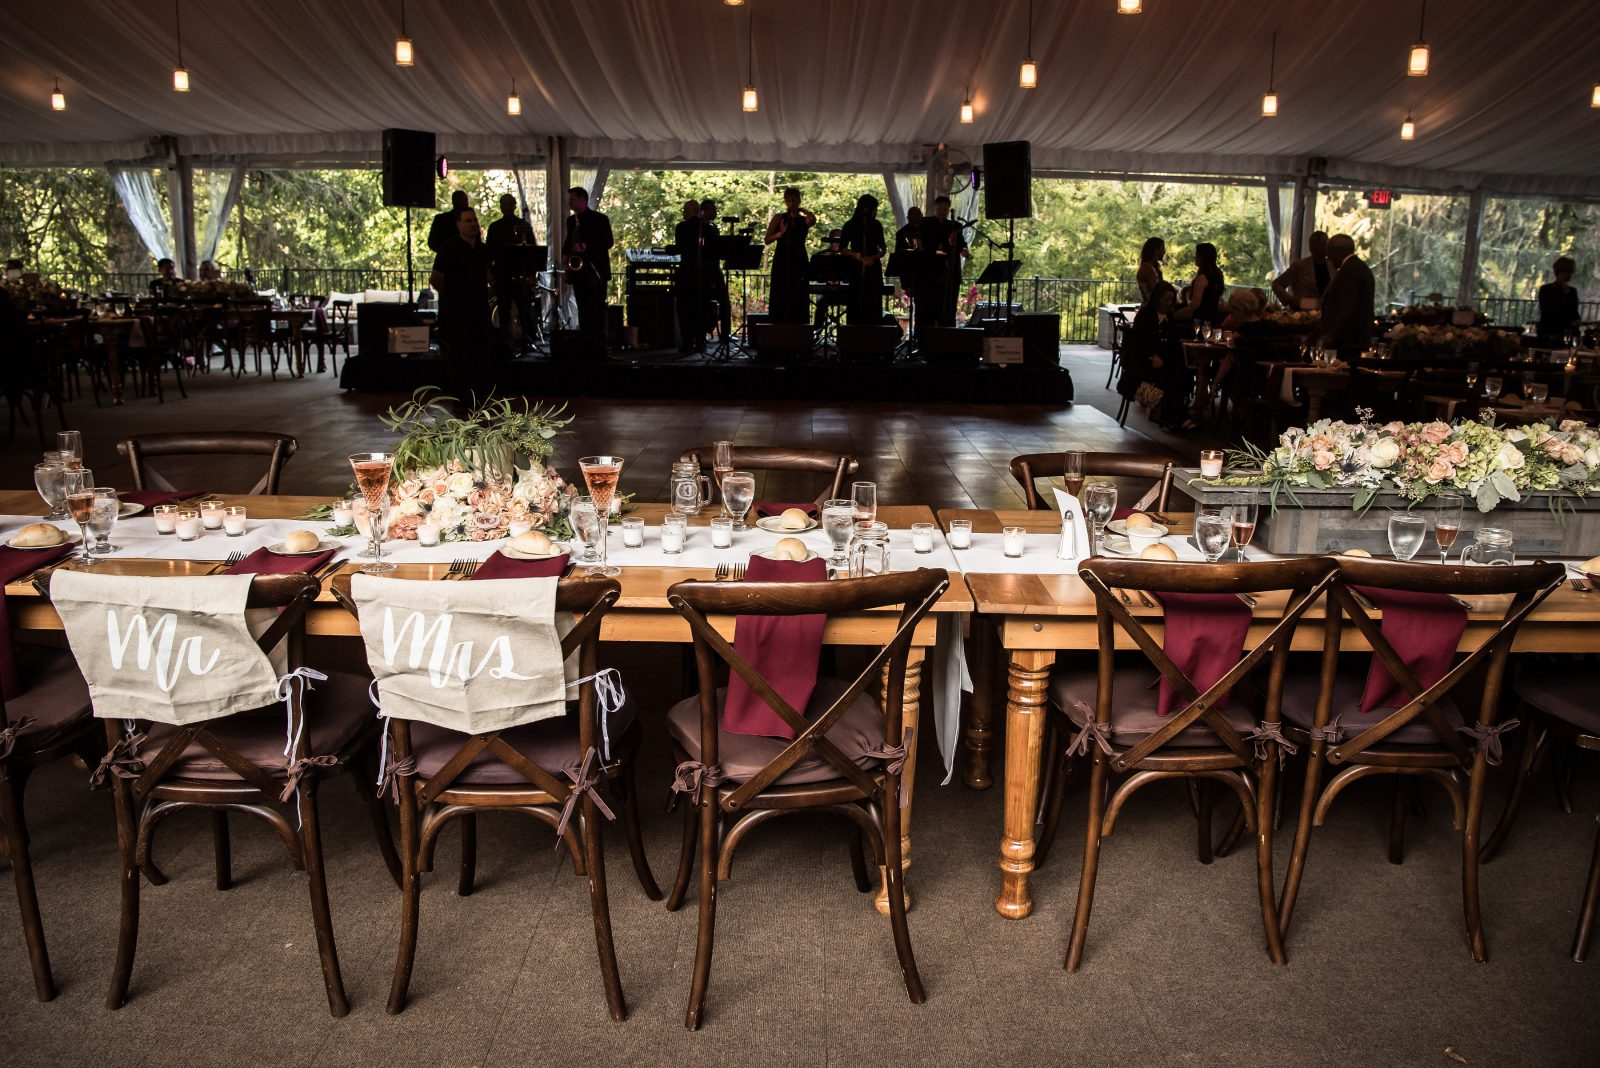 Philander Chase Knox Estate tented wedding reception, featuring long farmhouse tables and blush florals. Photo by Christie Green Photography